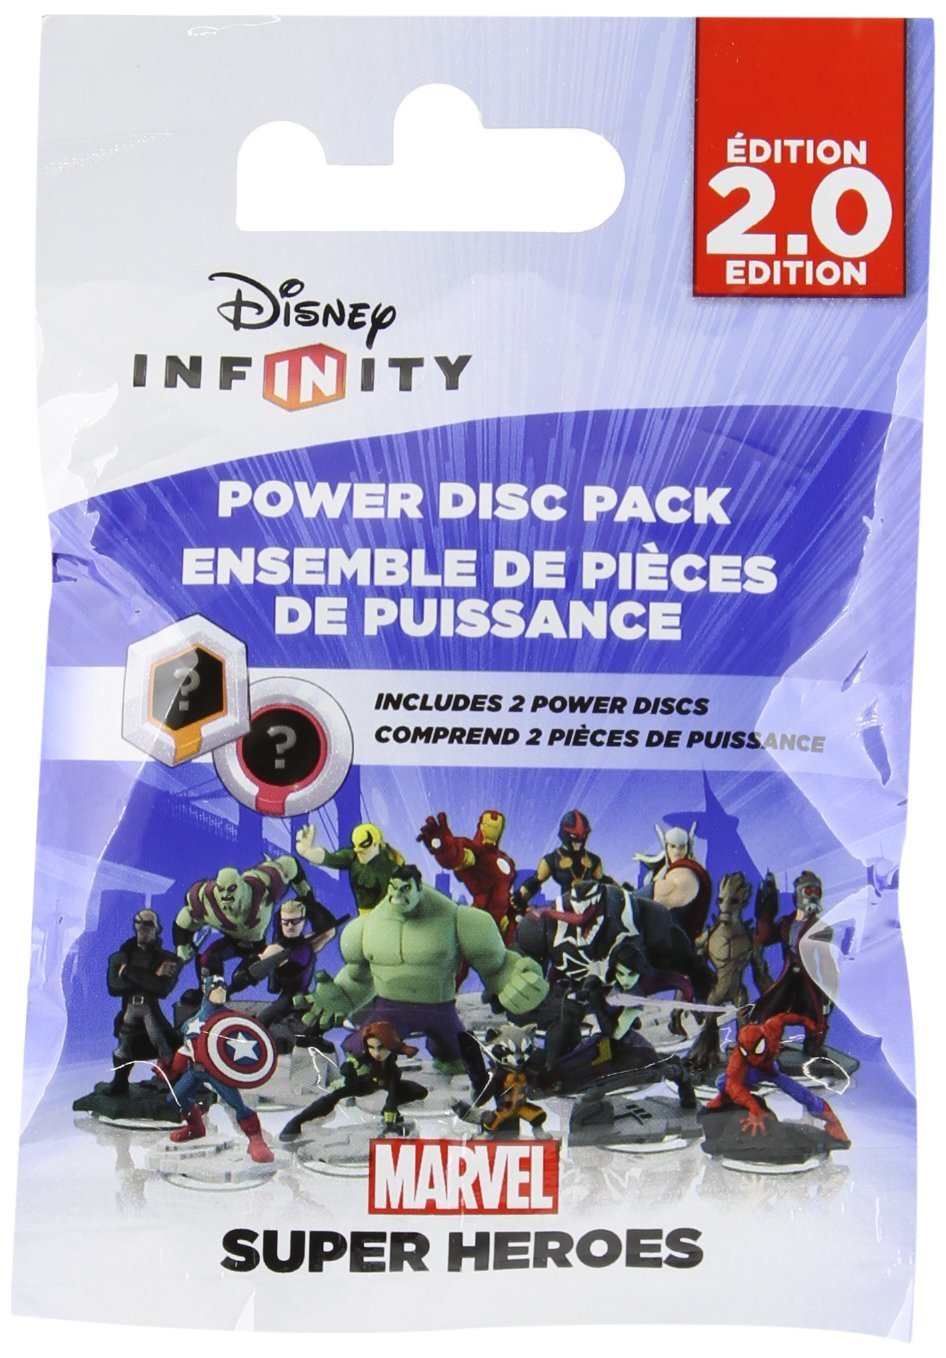 Disney INFINITY: 5% OFF 70% OFF Outlet Marvel Super Heroes Pa Edition Power 2.0 Disc